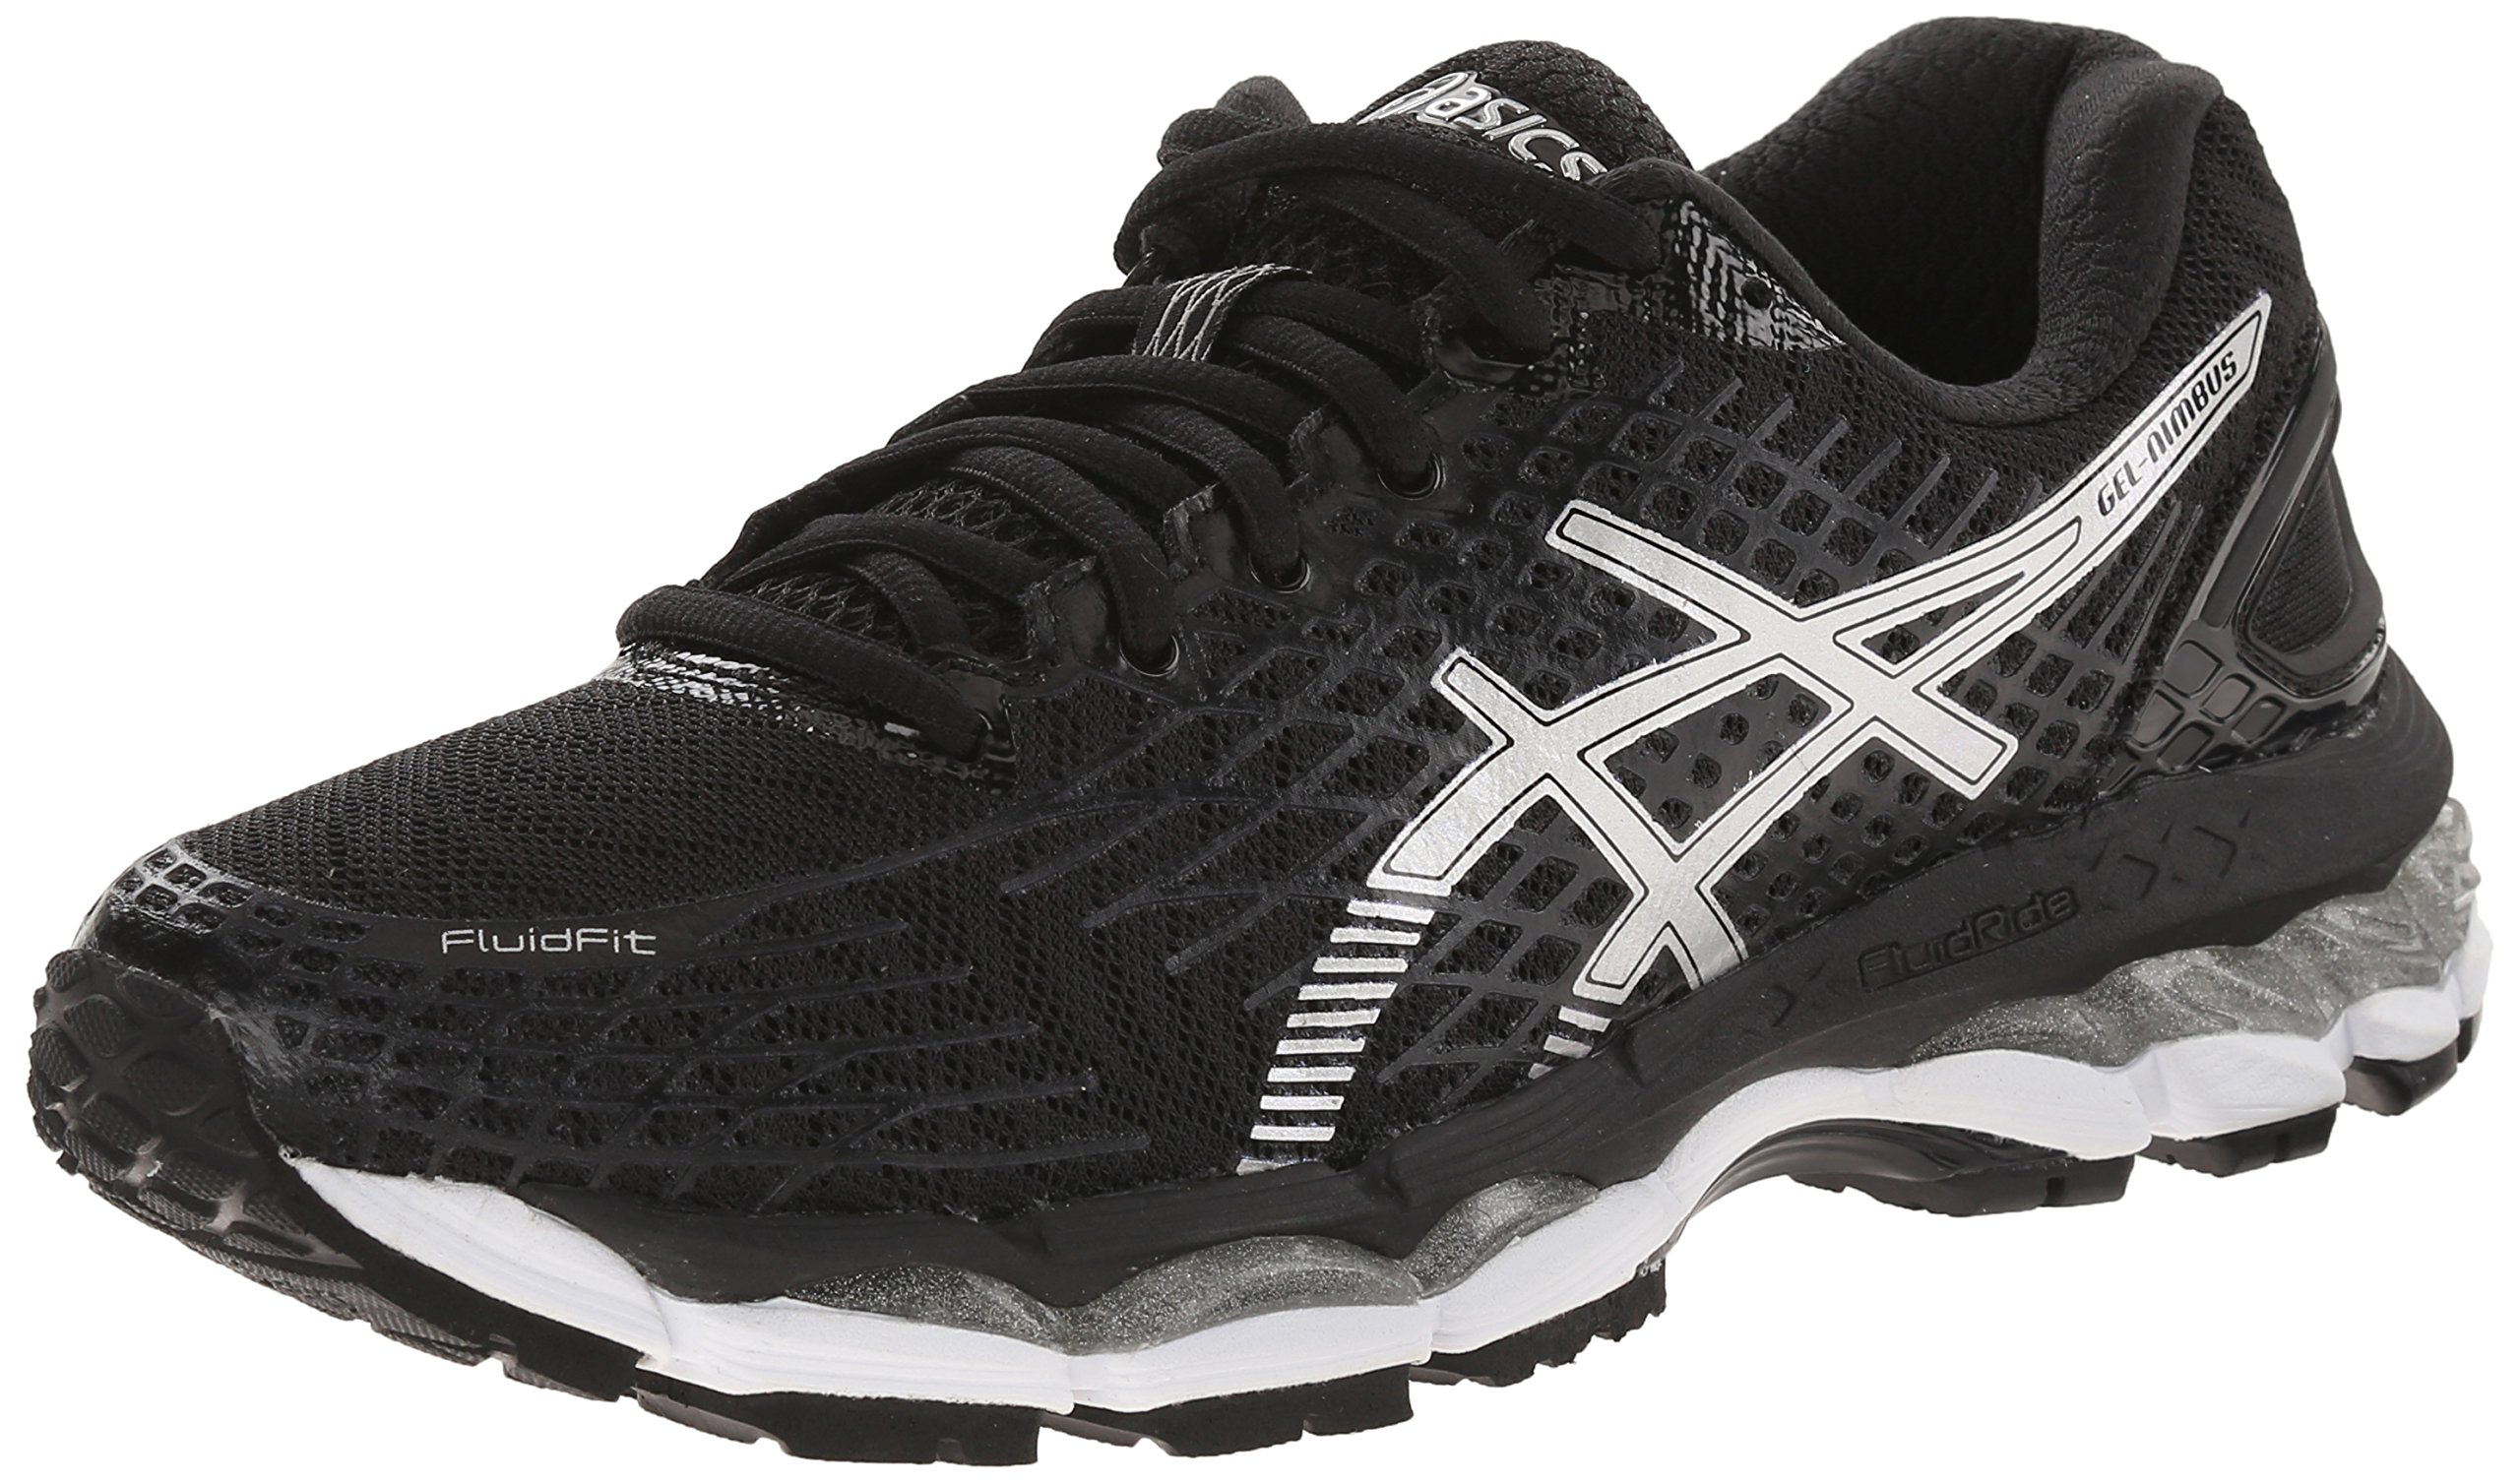 huge selection of 9d90c 96e1f ... wholesale asics asics womens gel nimbus 17 running shoe black silver  onyx 11.5 bm us walmart